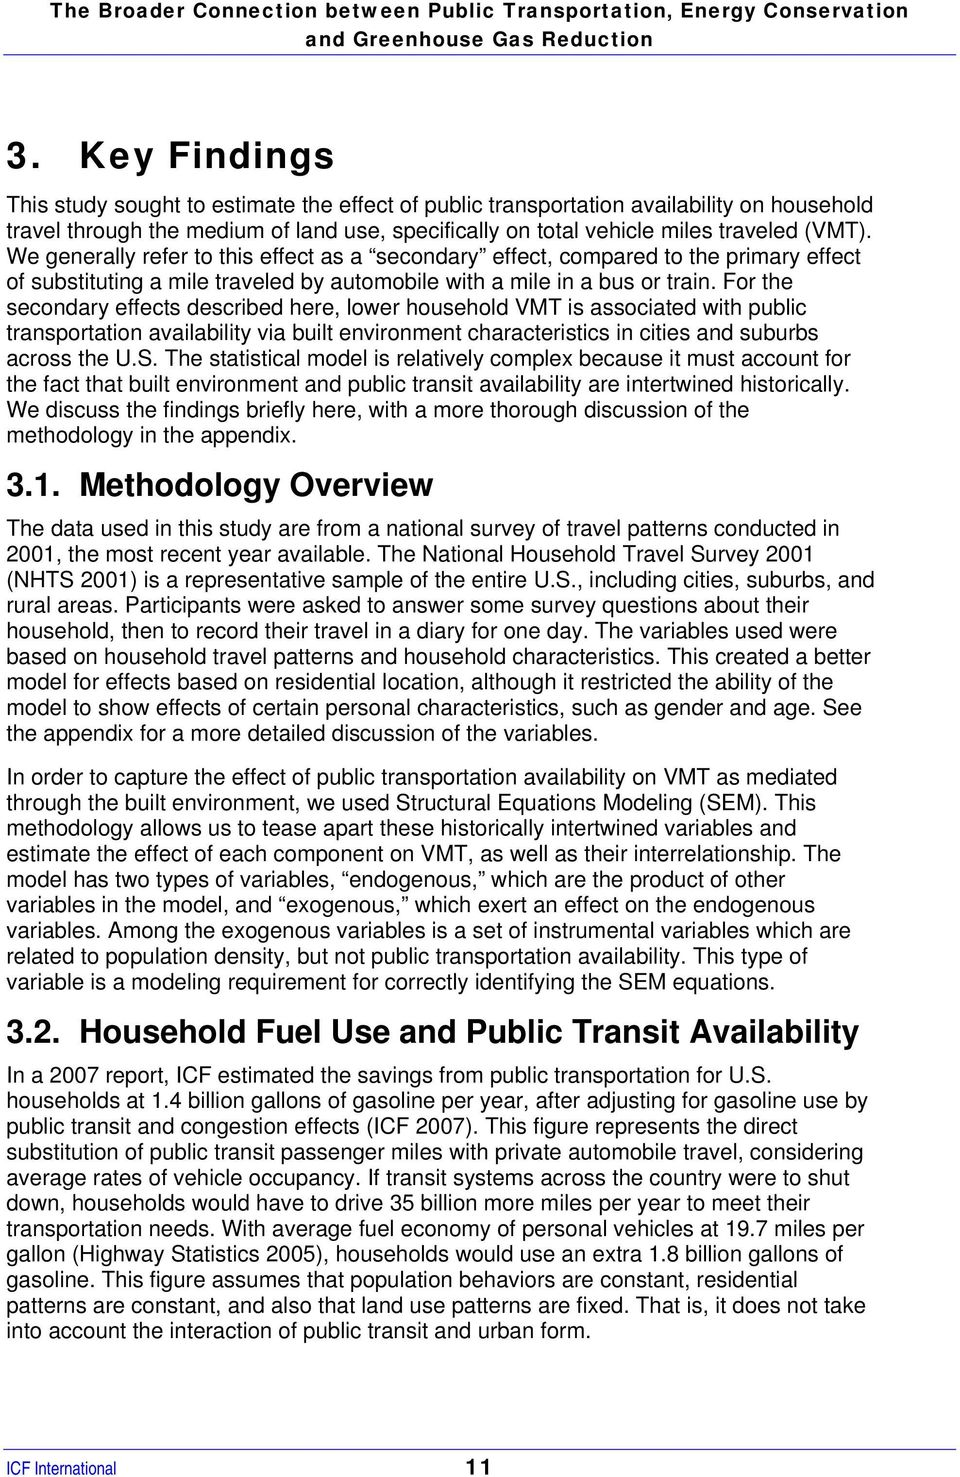 For the secondary effects described here, lower household VMT is associated with public transportation availability via built environment characteristics in cities and suburbs across the U.S.